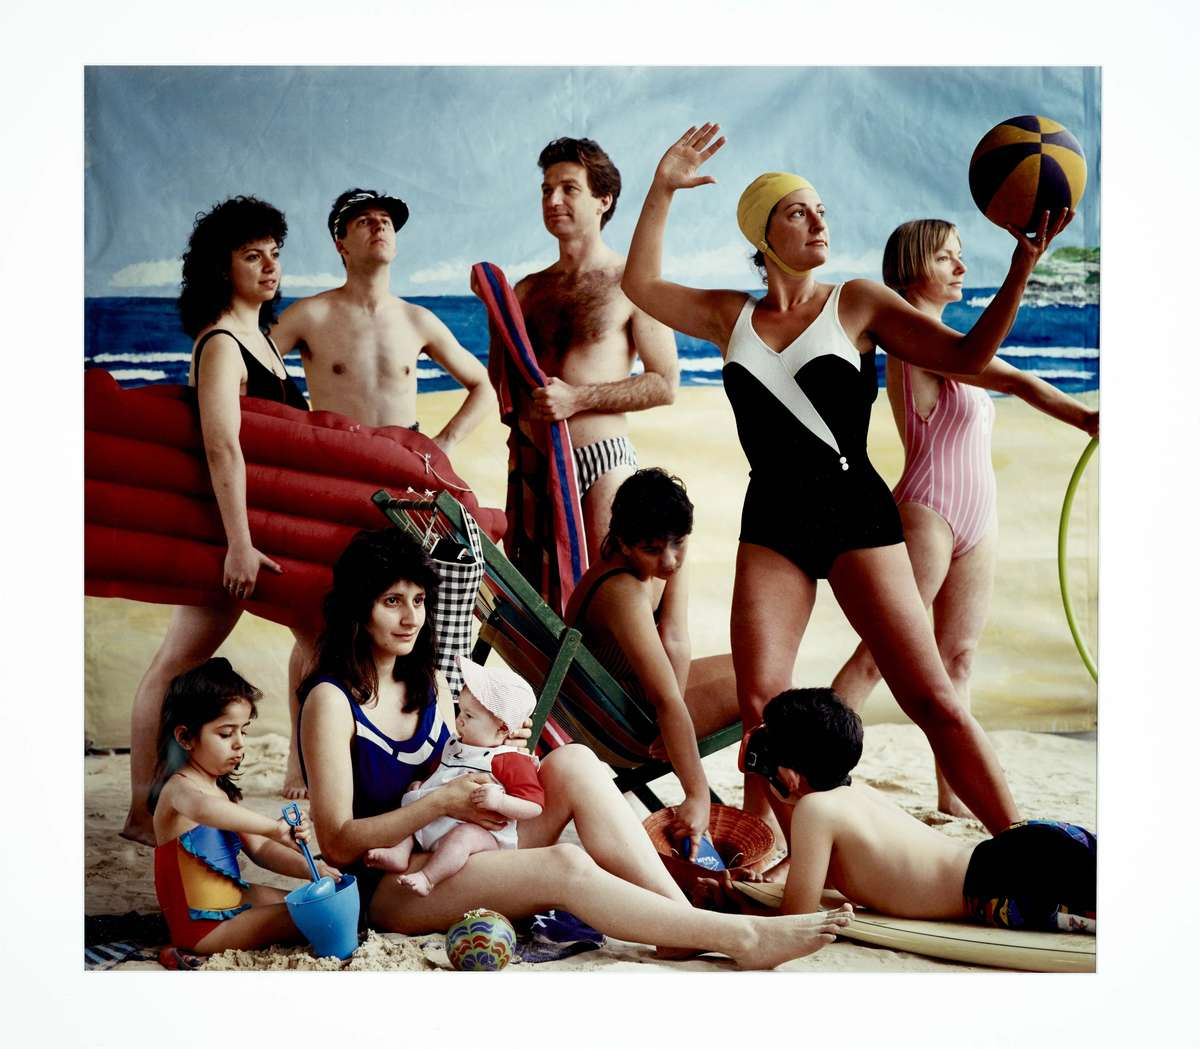 Anne Zahalka The Bathers 1989. Type C print. ANMM Collection 00019000. Reproduced courtesy the photographer.